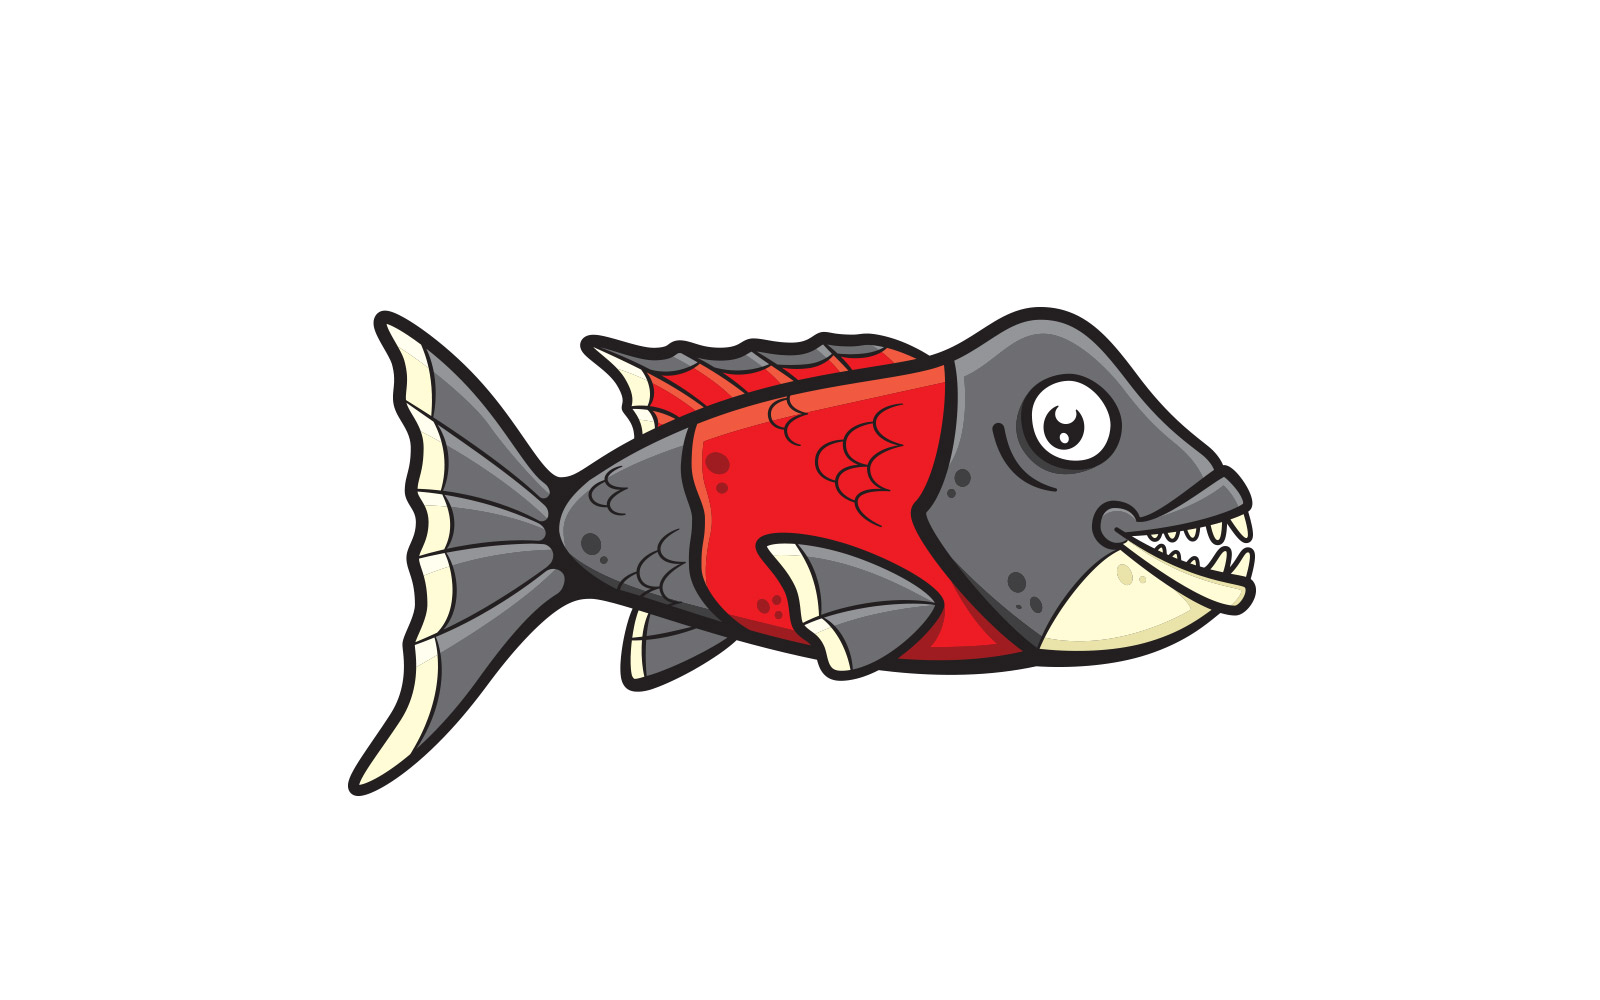 CISCOS California Sheephead Fish Illustration -- final digital version